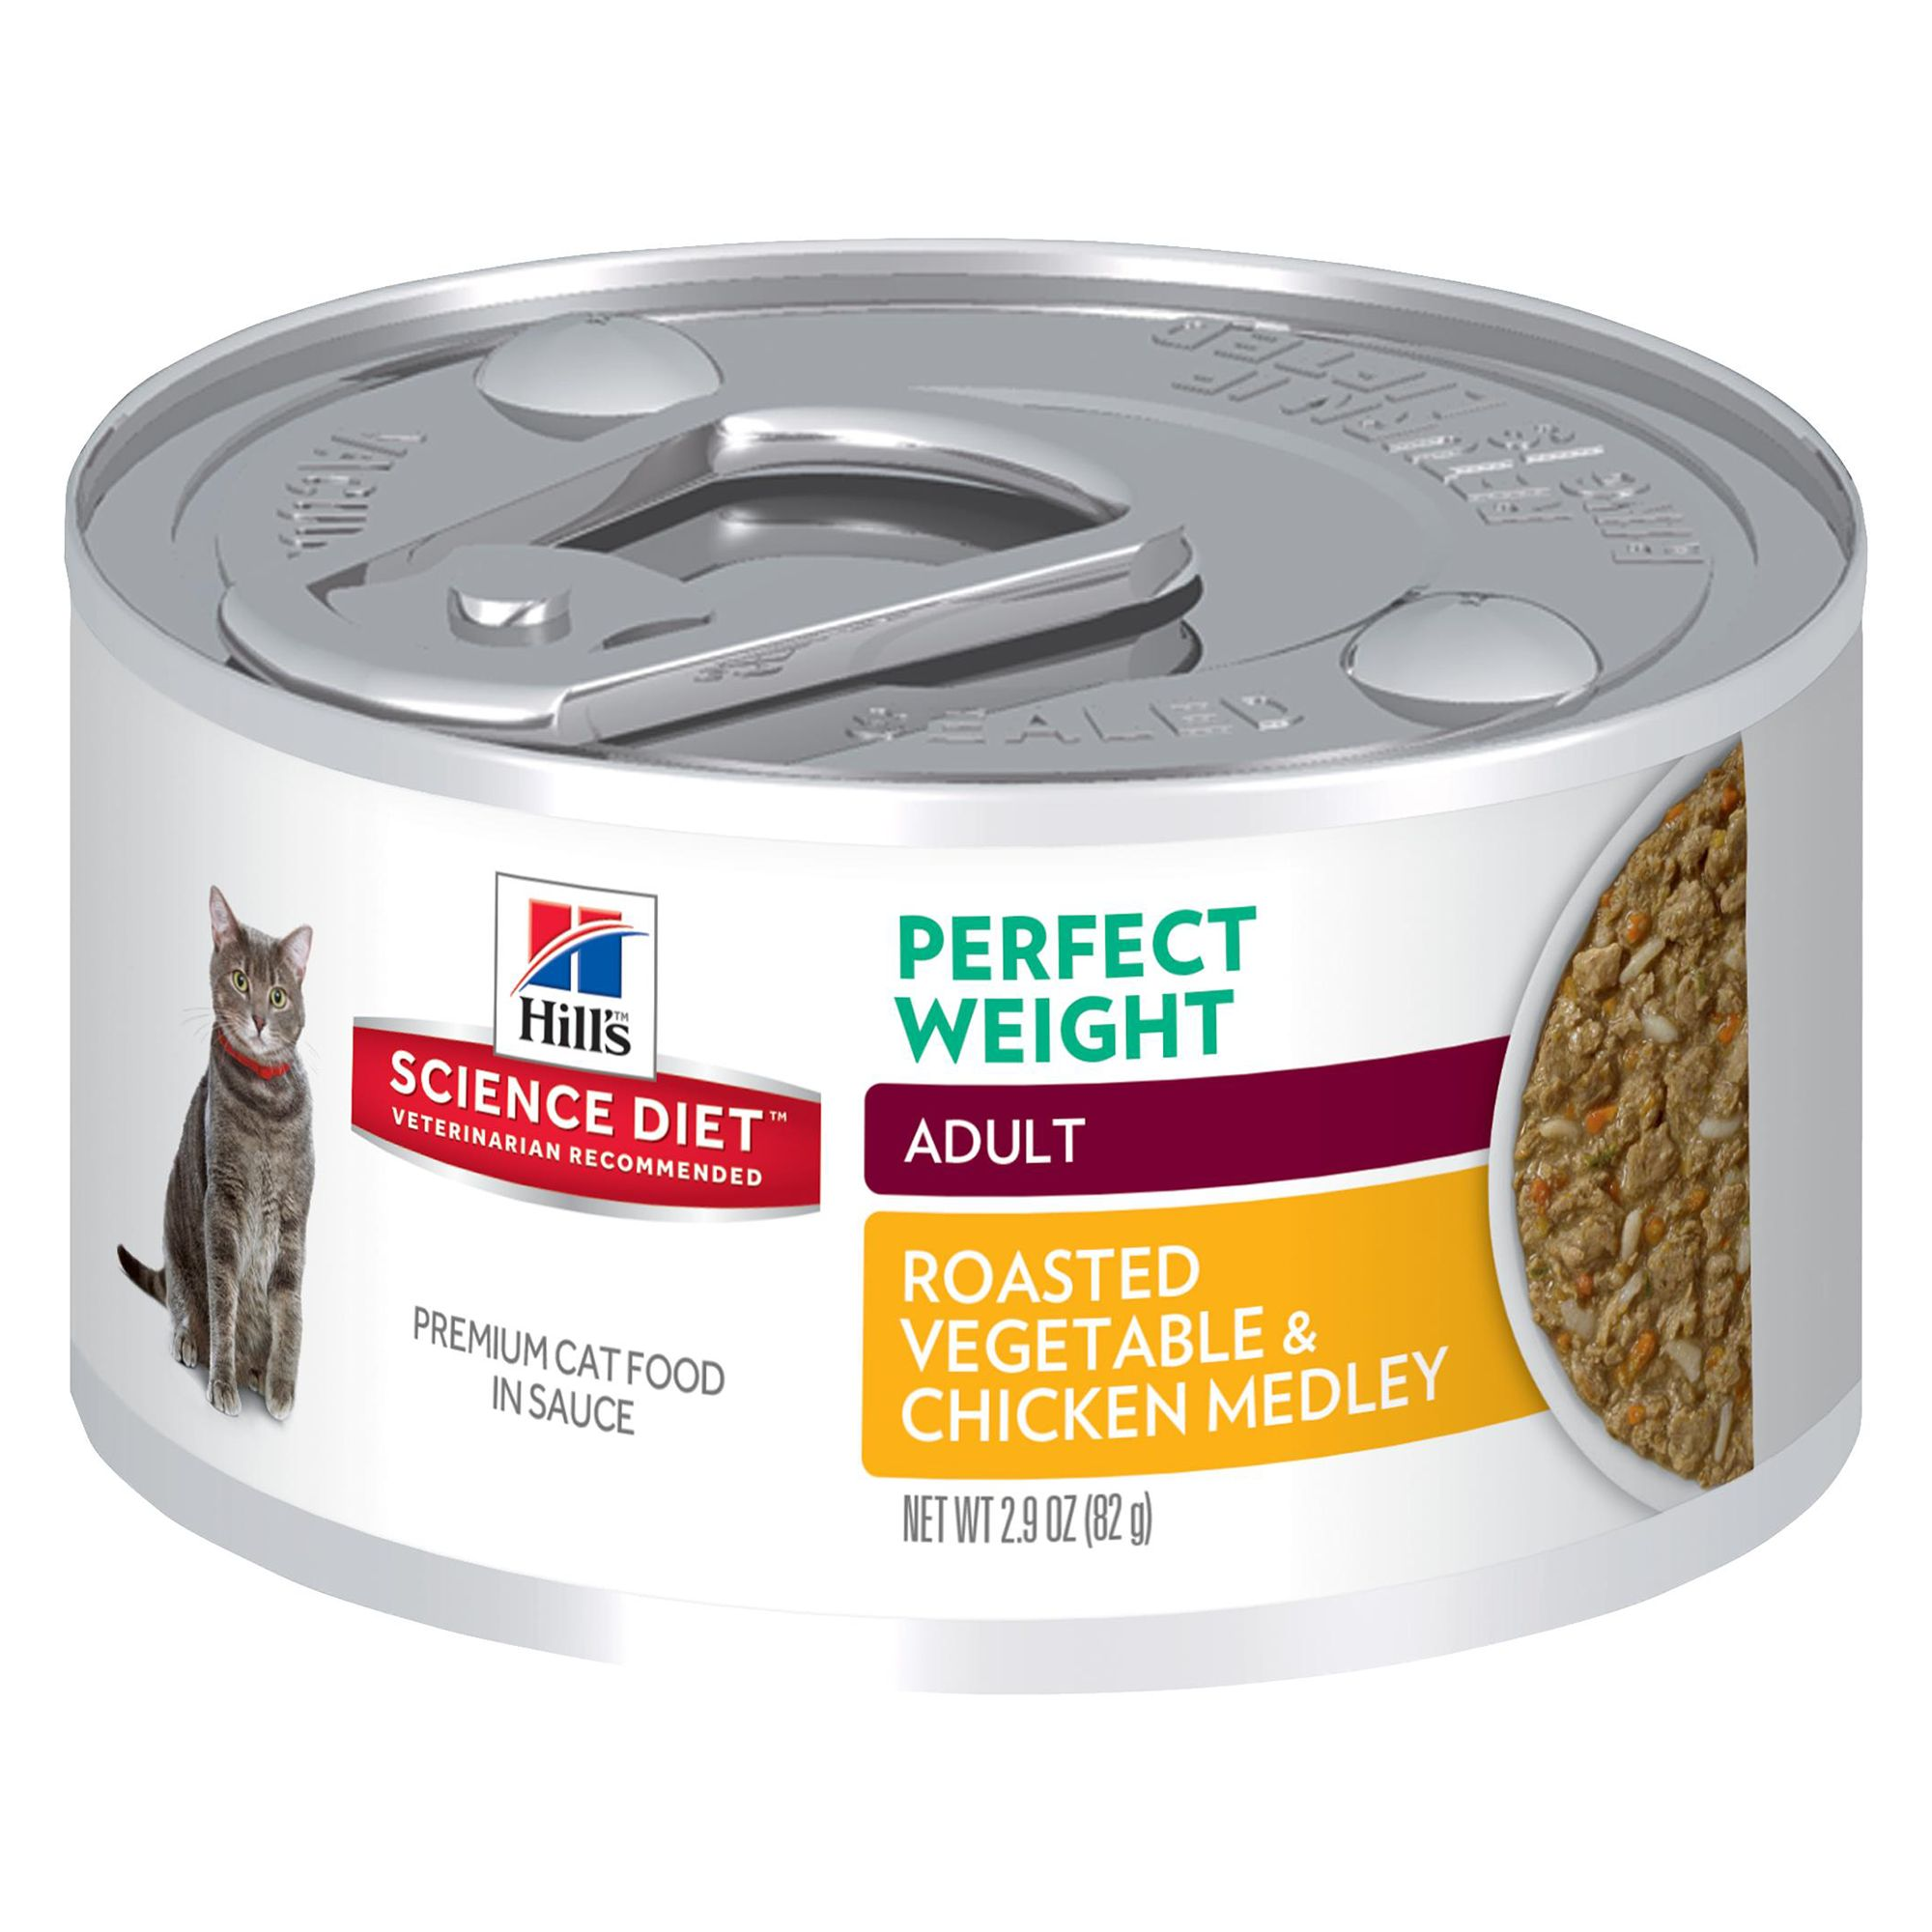 Hill S Science Diet Perfect Weight Adult Cat Food Roasted Vegetable And Chicken Medley Size 2 9 Oz Coconut Copper Gum Pork Liver Cats Including Hills Science Diet Science Diet Canned Cat Food